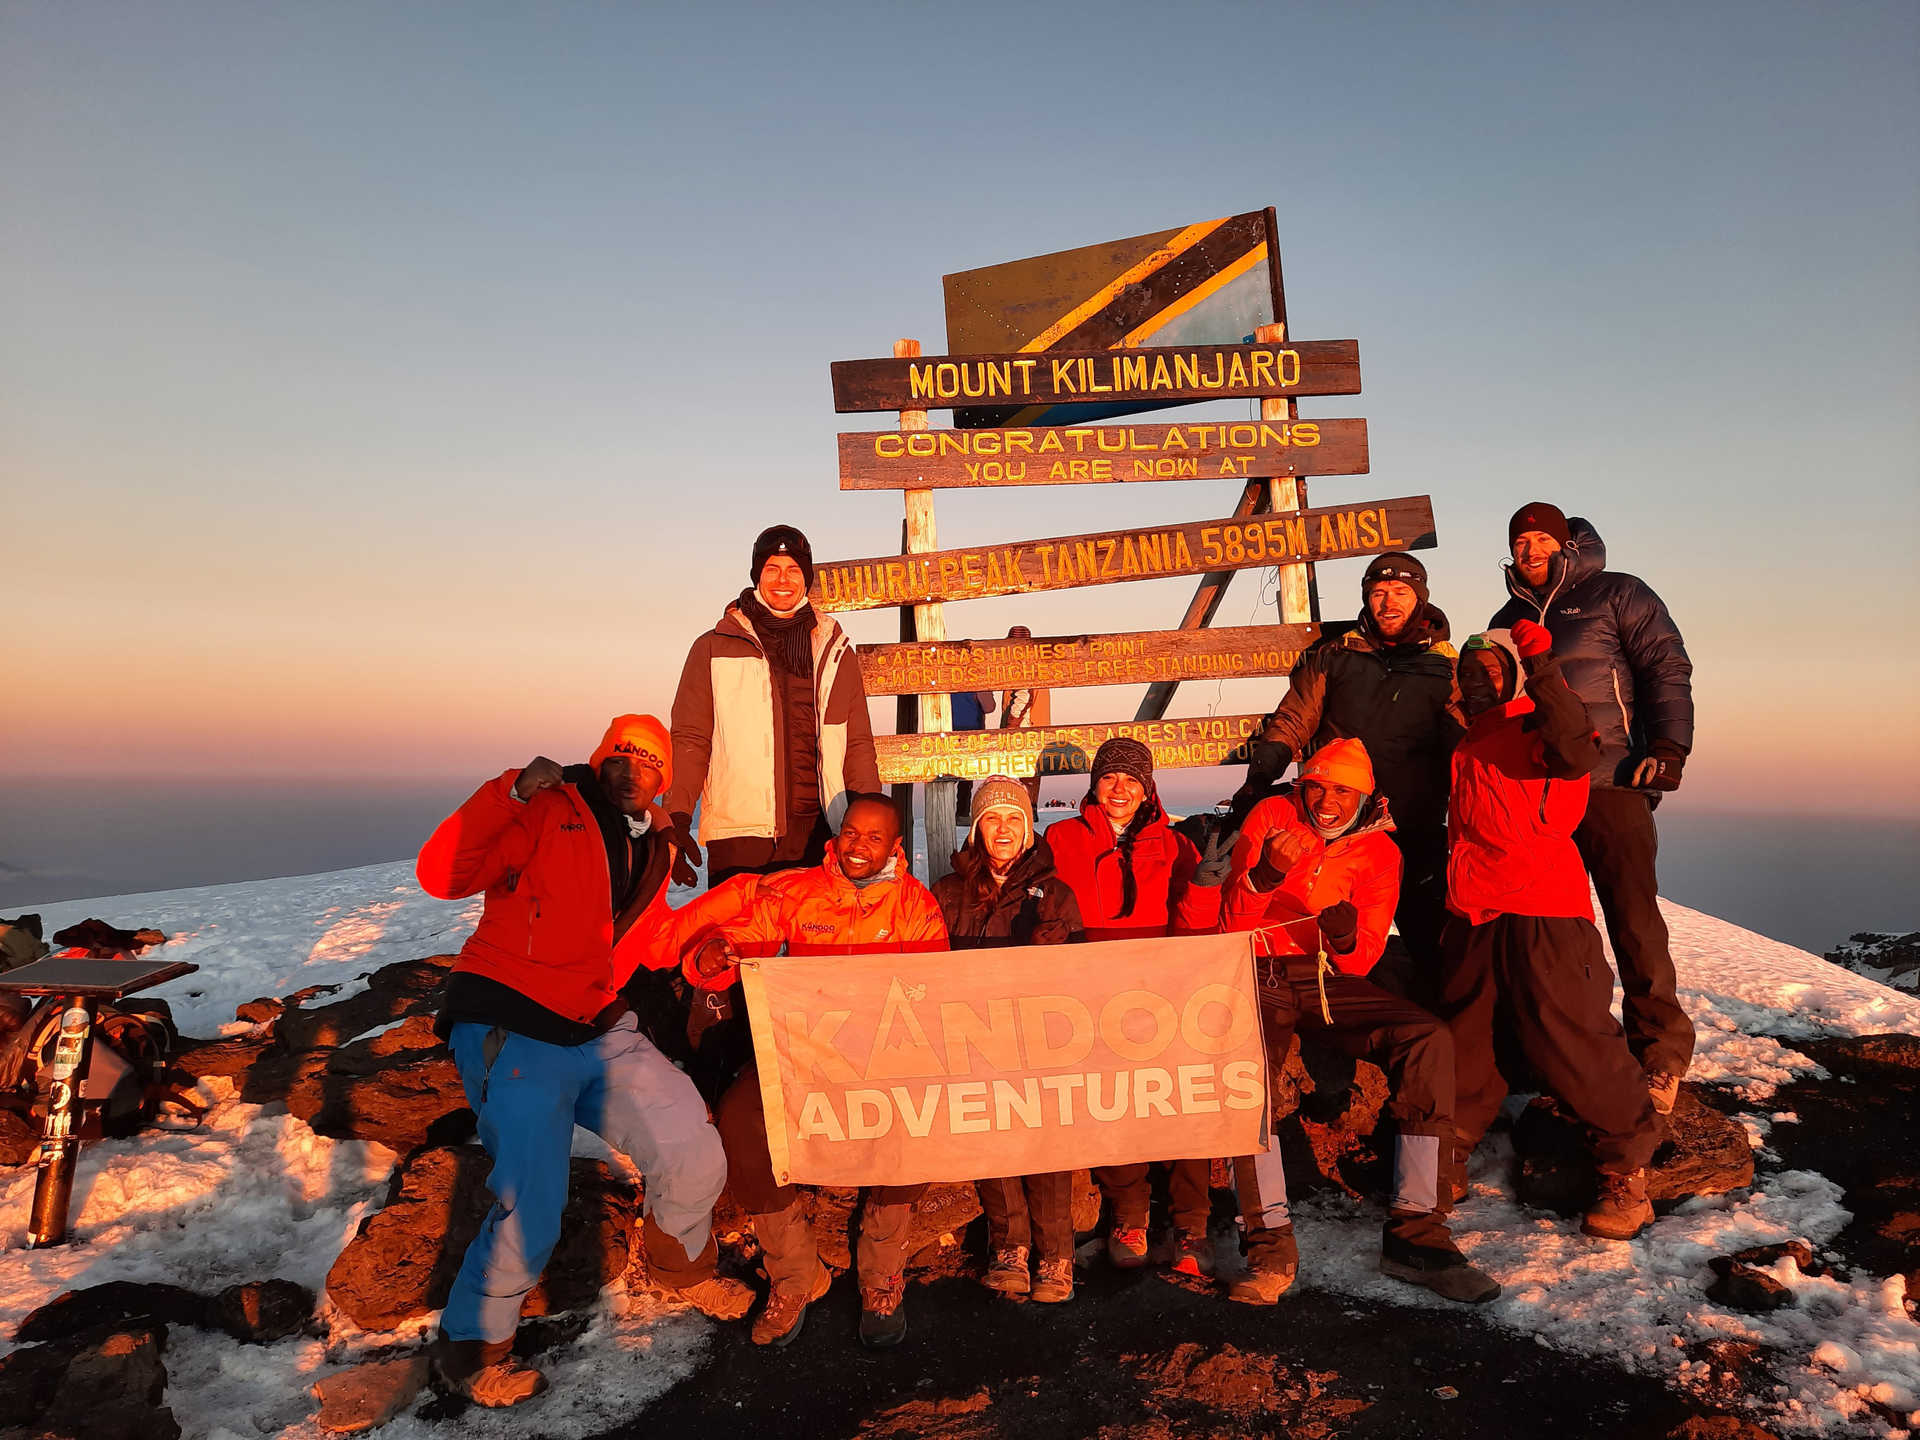 Kandoo guides and climbers on the summit of Kilimanjaro